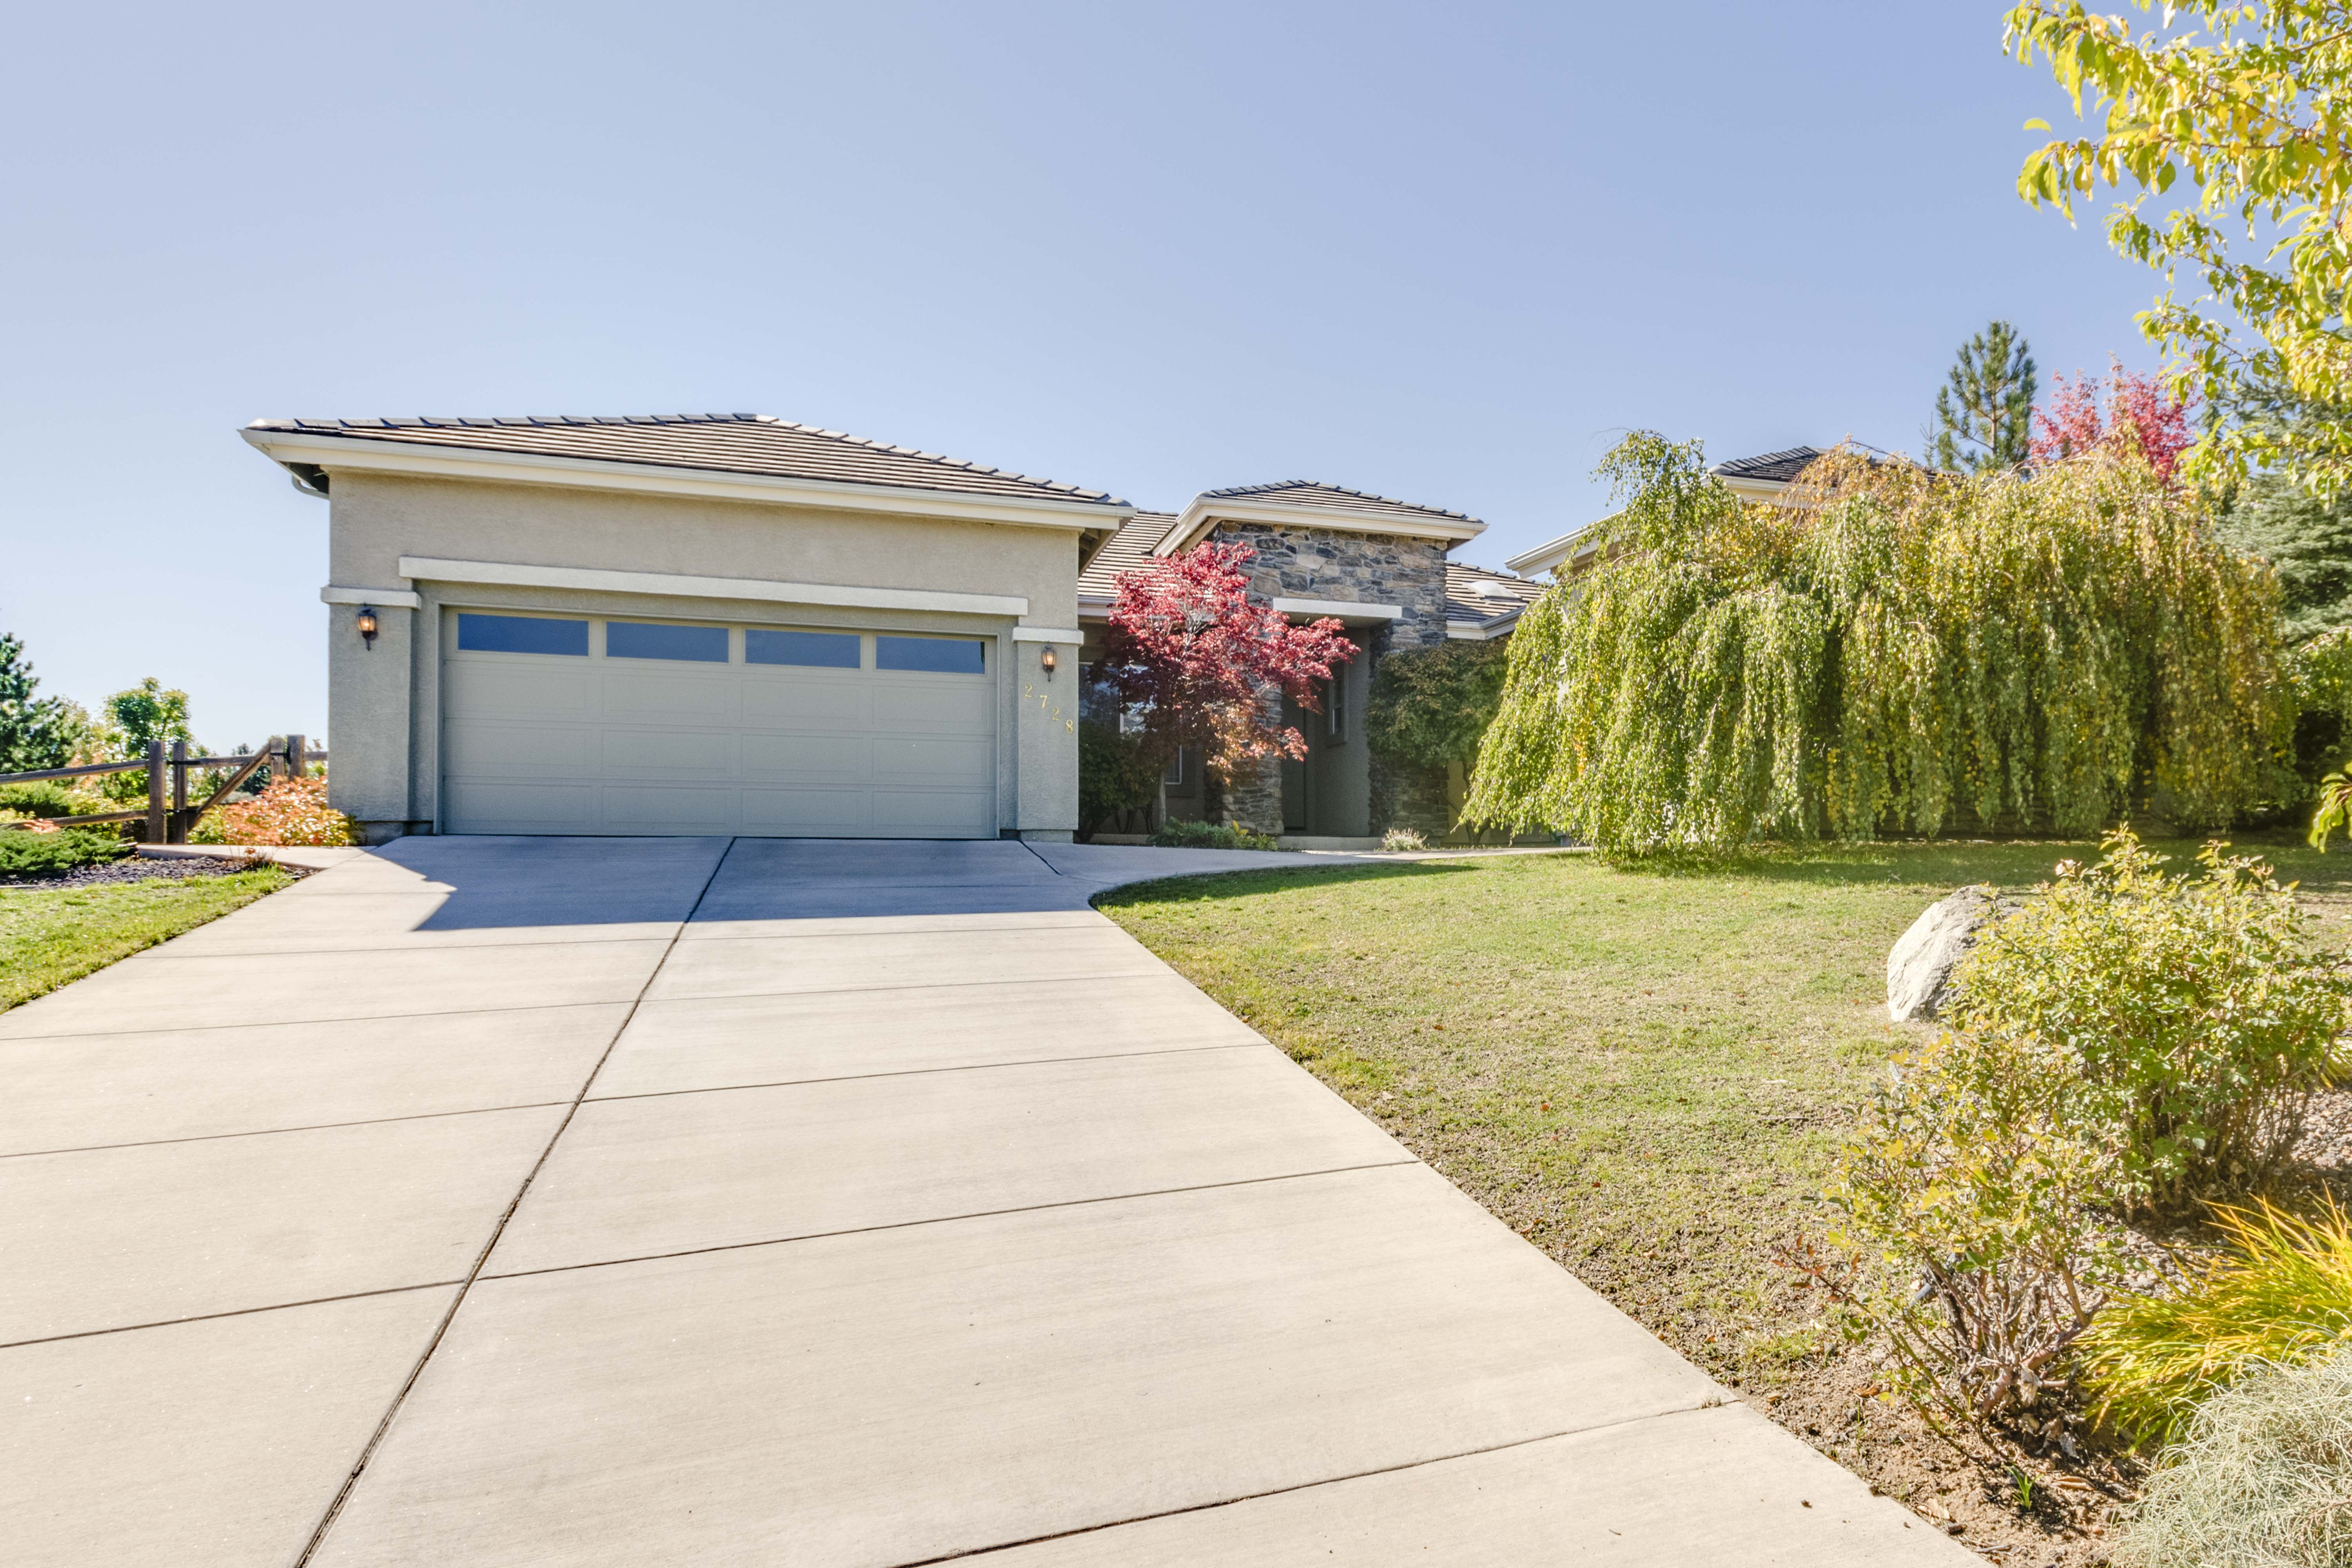 100 homes for sale on trulia 91 homes for sale in patterson ca on movoto see 115 324 ca